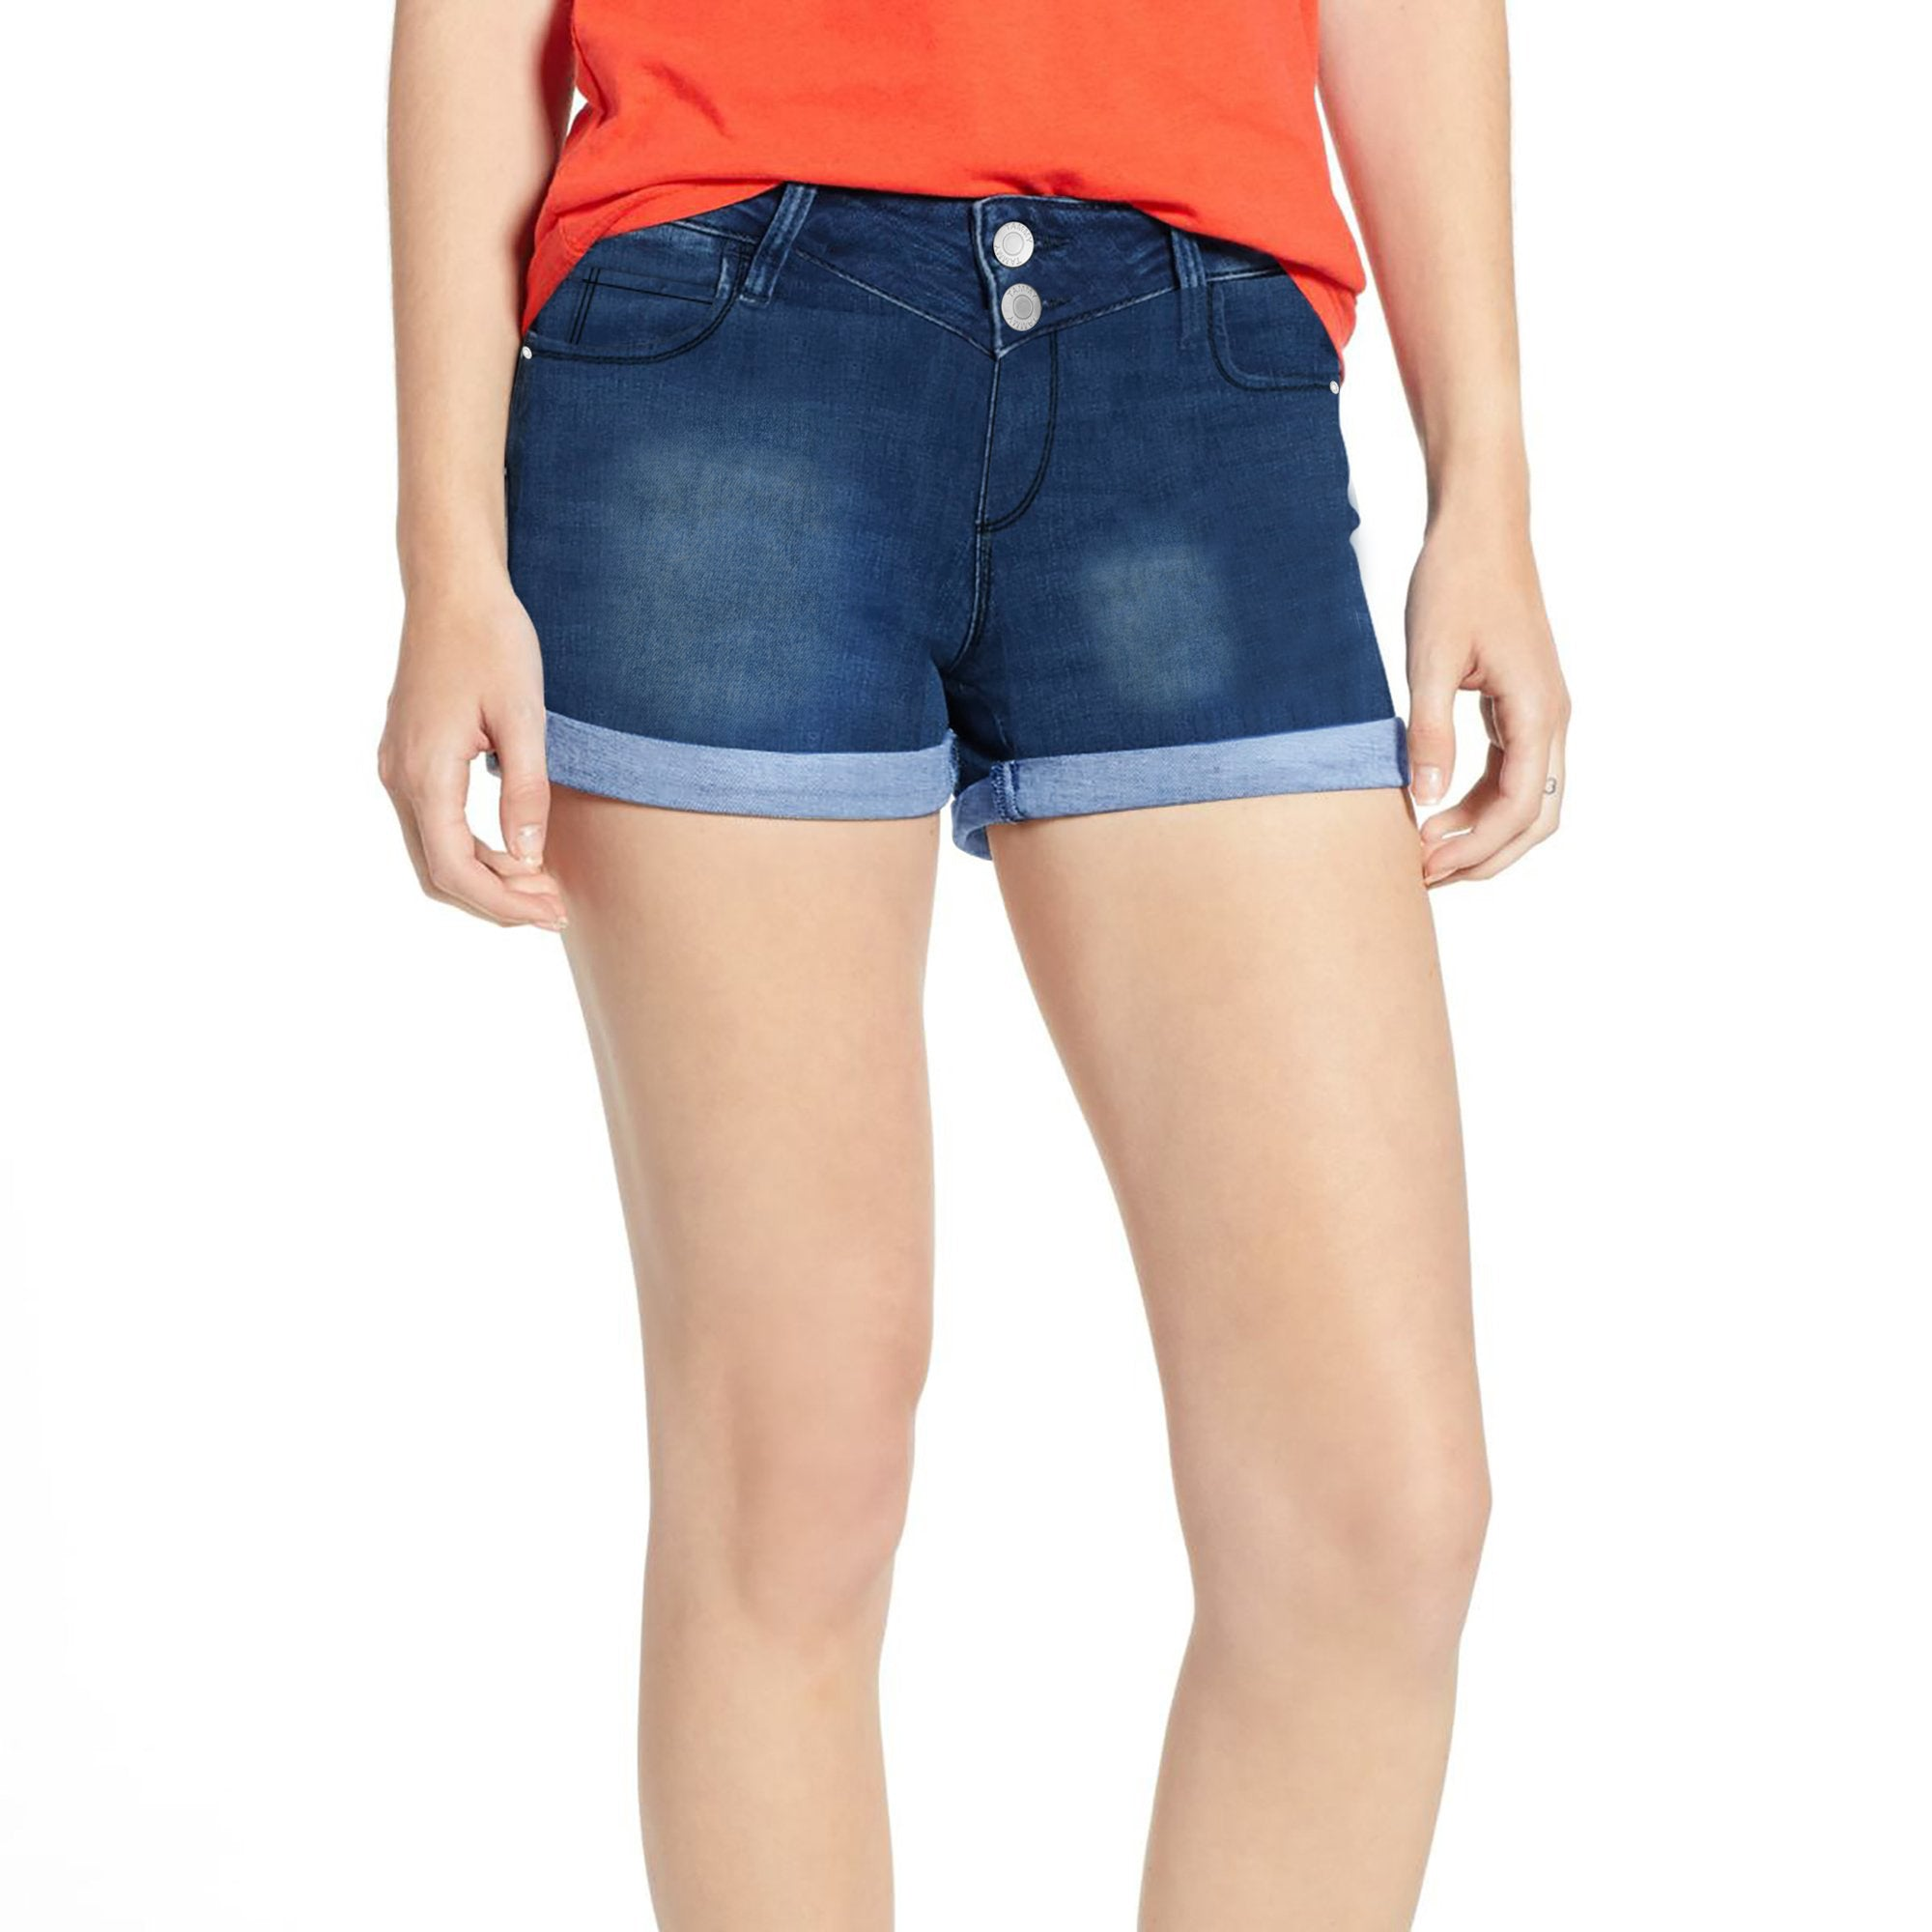 brandsego - Tammy Girl Denim Short For Ladies-Dirty Wash -SP111